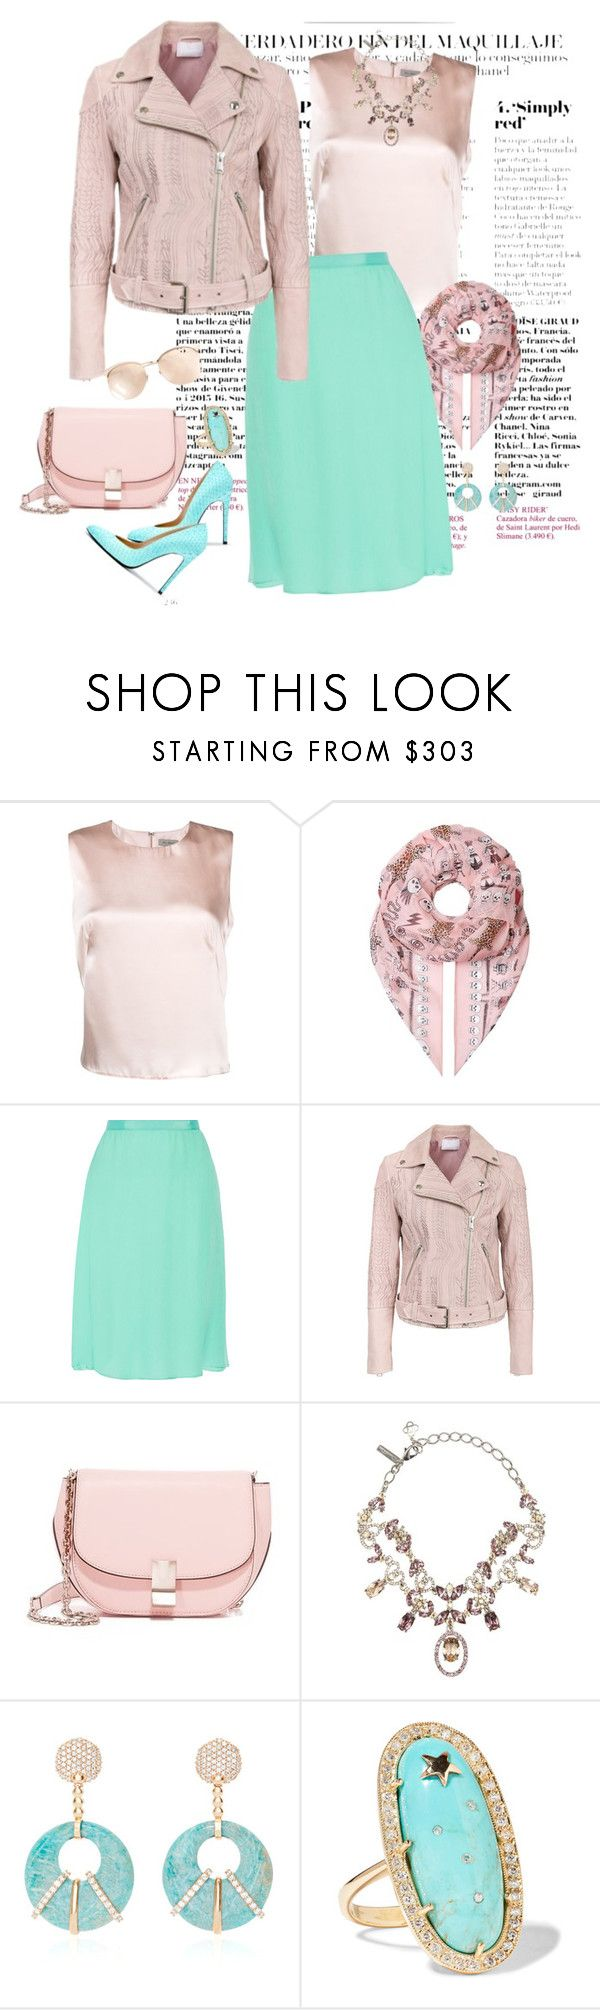 """E4"" by saltless ❤ liked on Polyvore featuring Alice Archer, Barbara Bui, Alexander McQueen, Oscar de la Renta, Lala Berlin, Flynn, Laura Pierson, Andrea Fohrman and Linda Farrow"